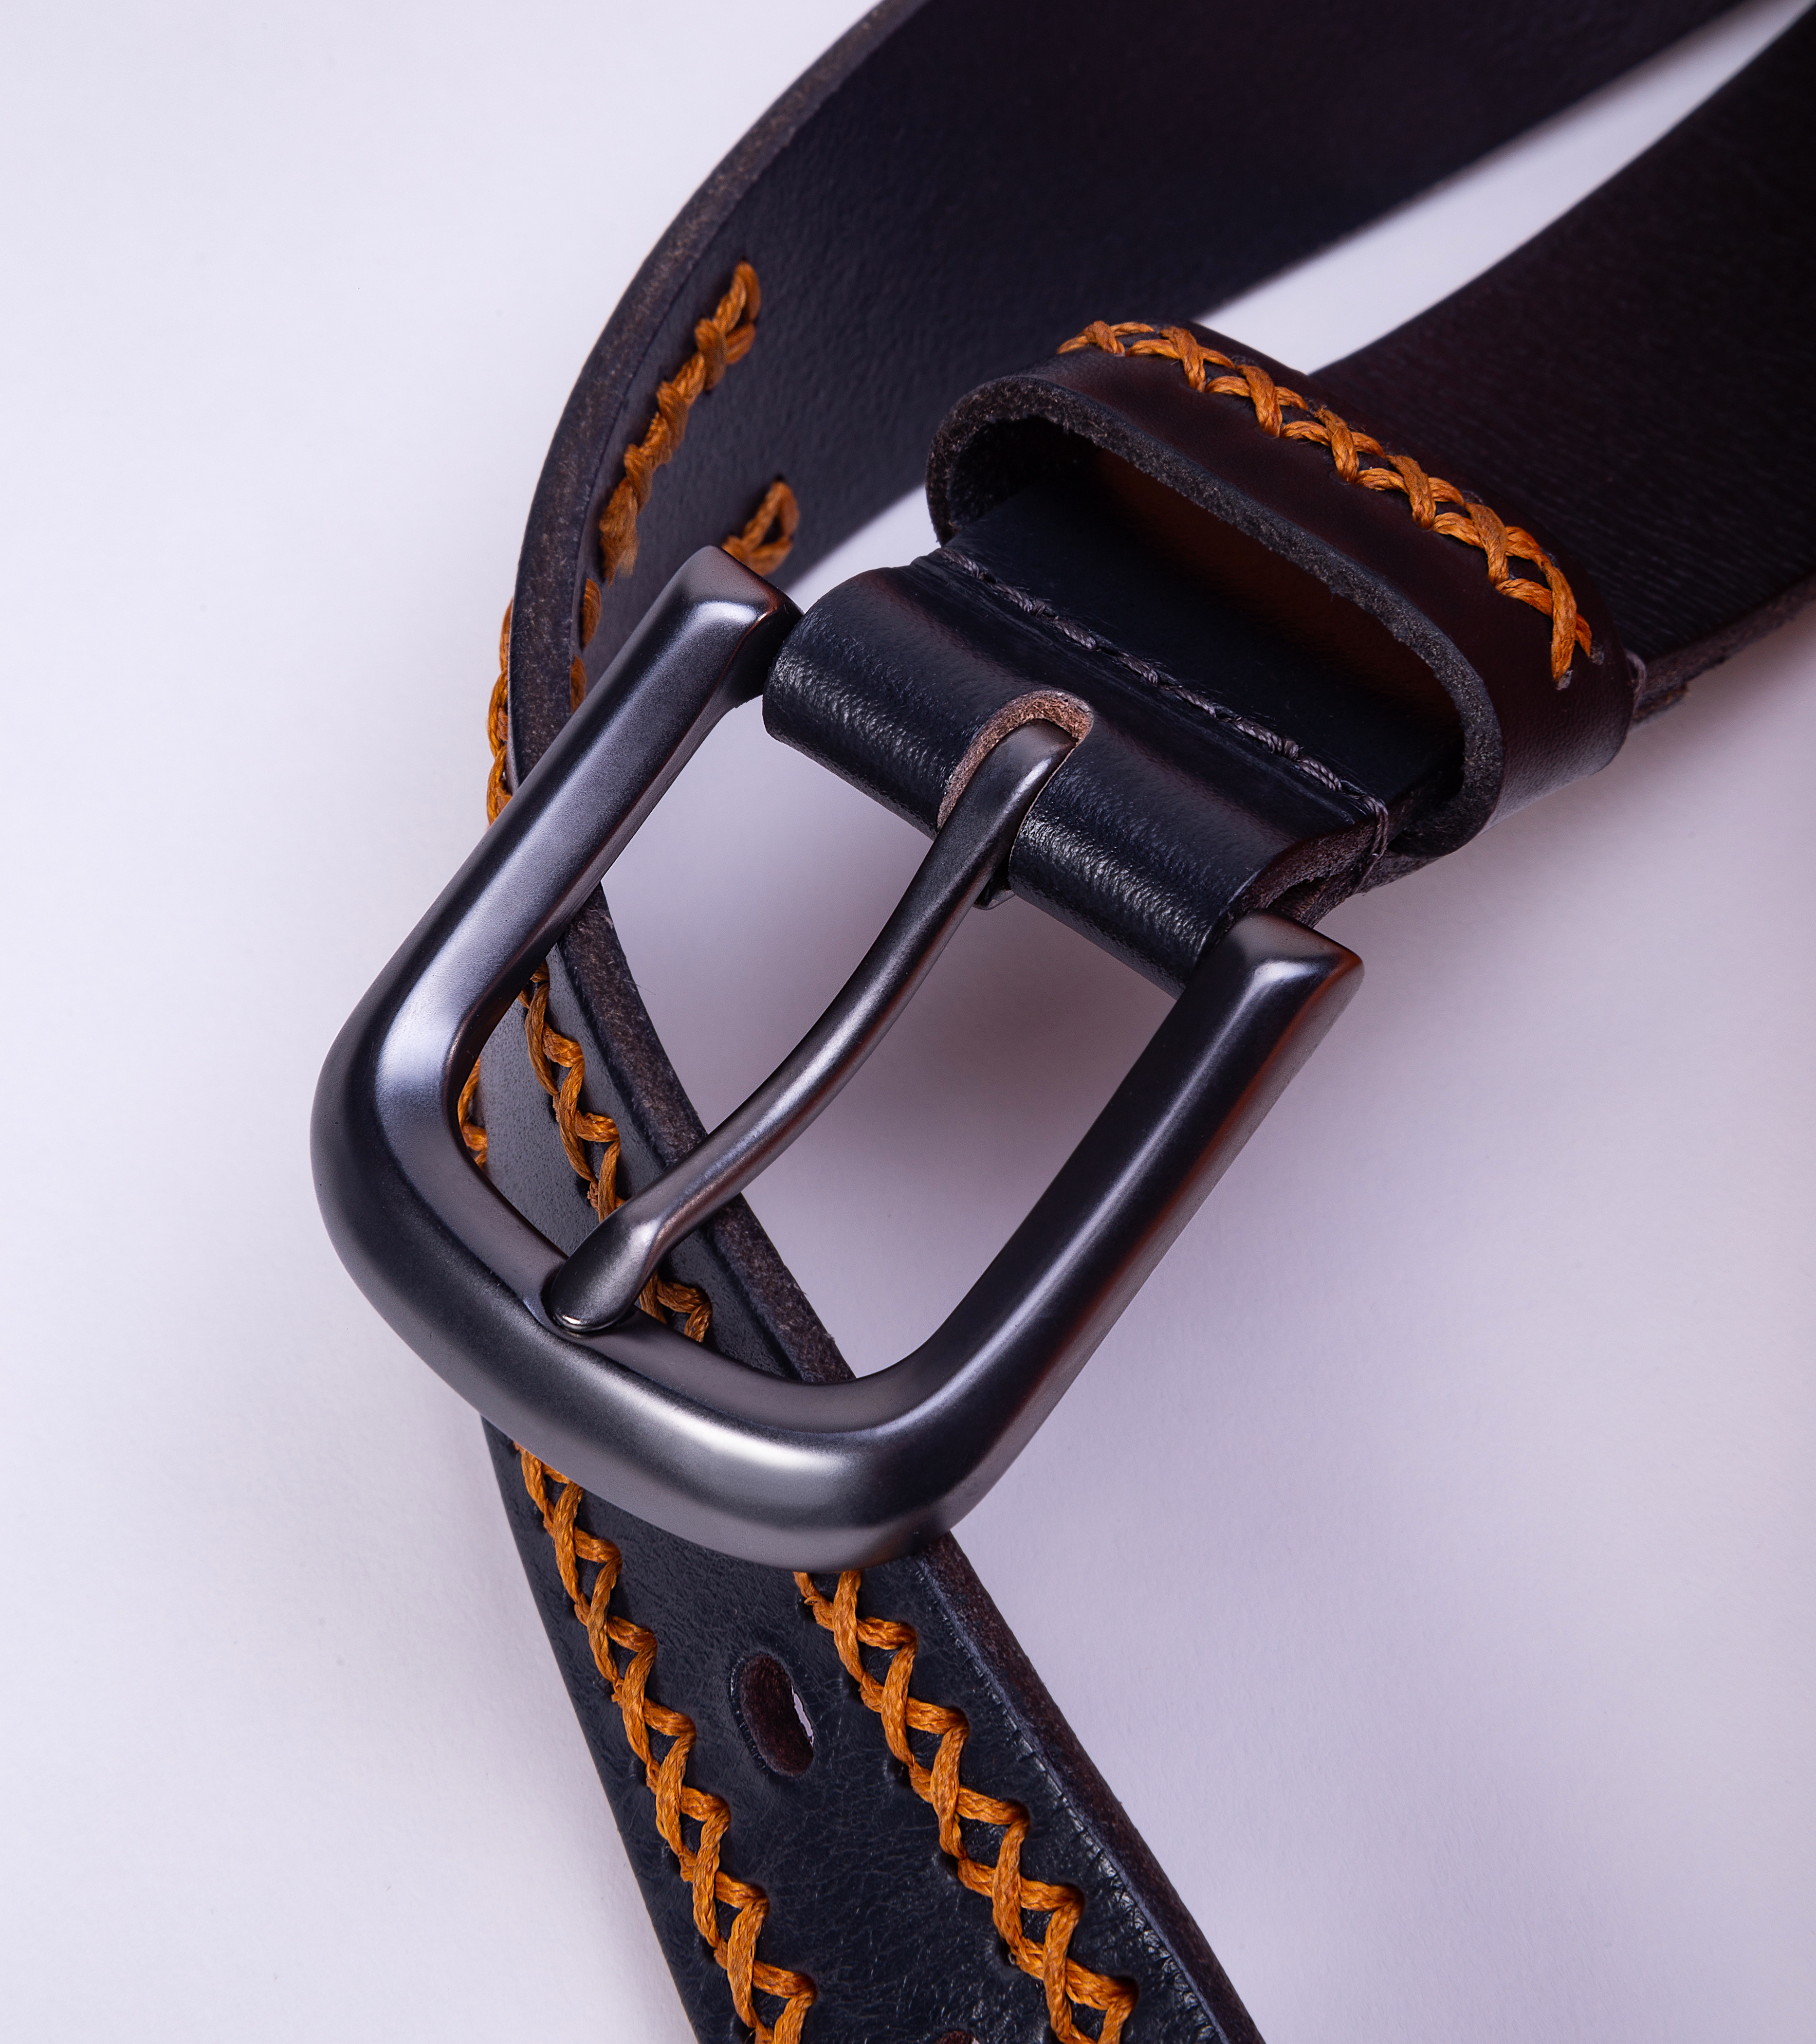 BELTS-91-Edit-1 PRODYGY BRANDS BY Jorge